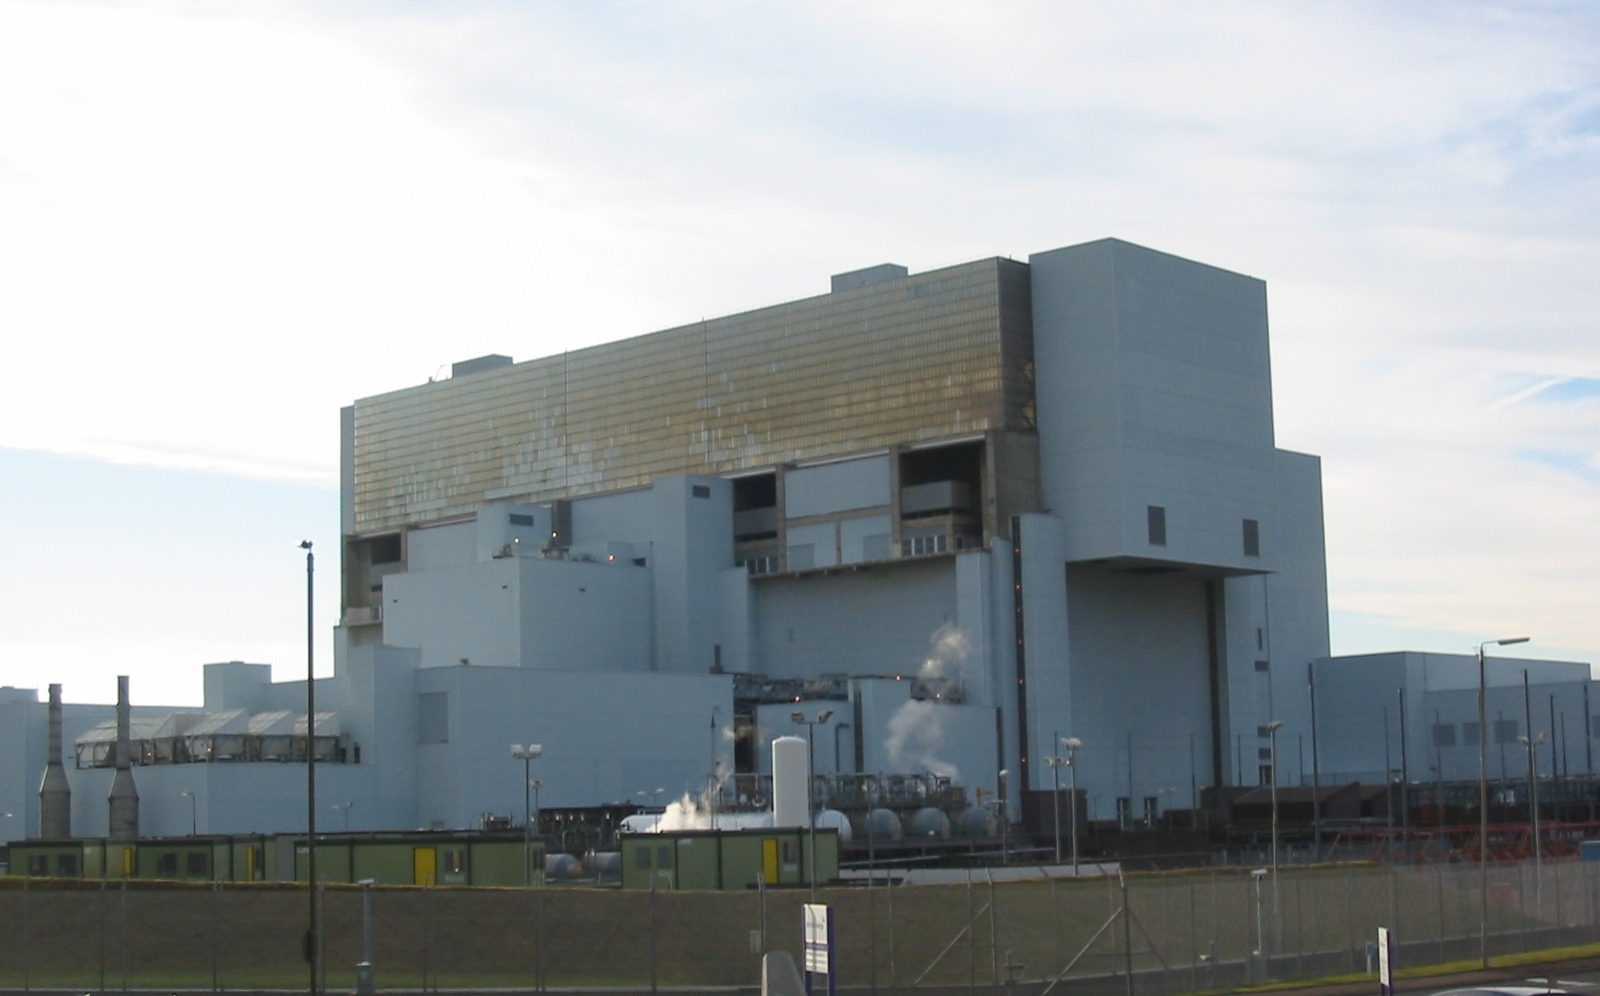 The core of a Scottish nuclear reactor is cracked, and there is no plan to fix it